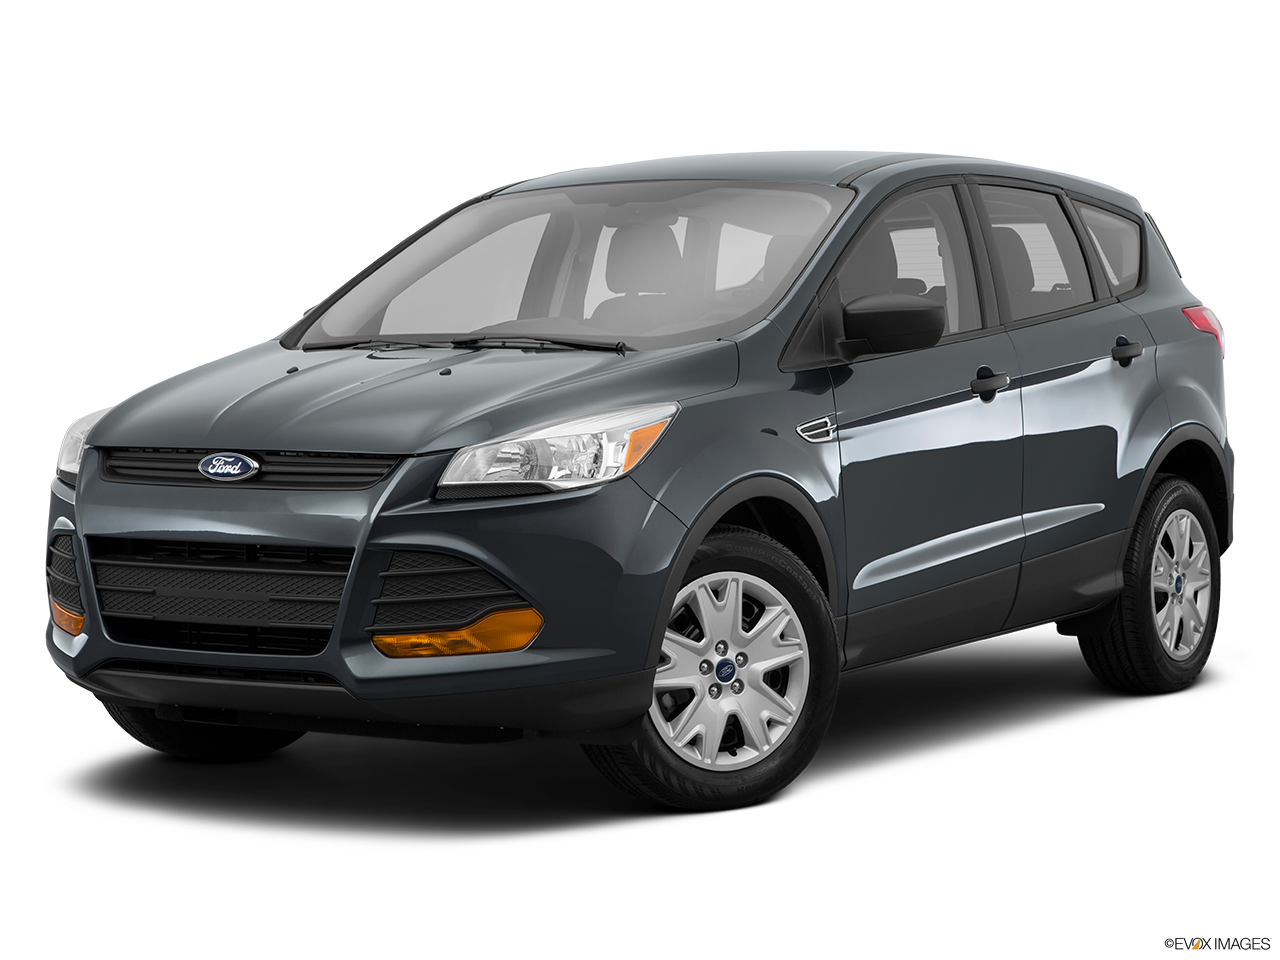 Test Drive A 2015 Ford Escape at Doenges Ford in Tulsa